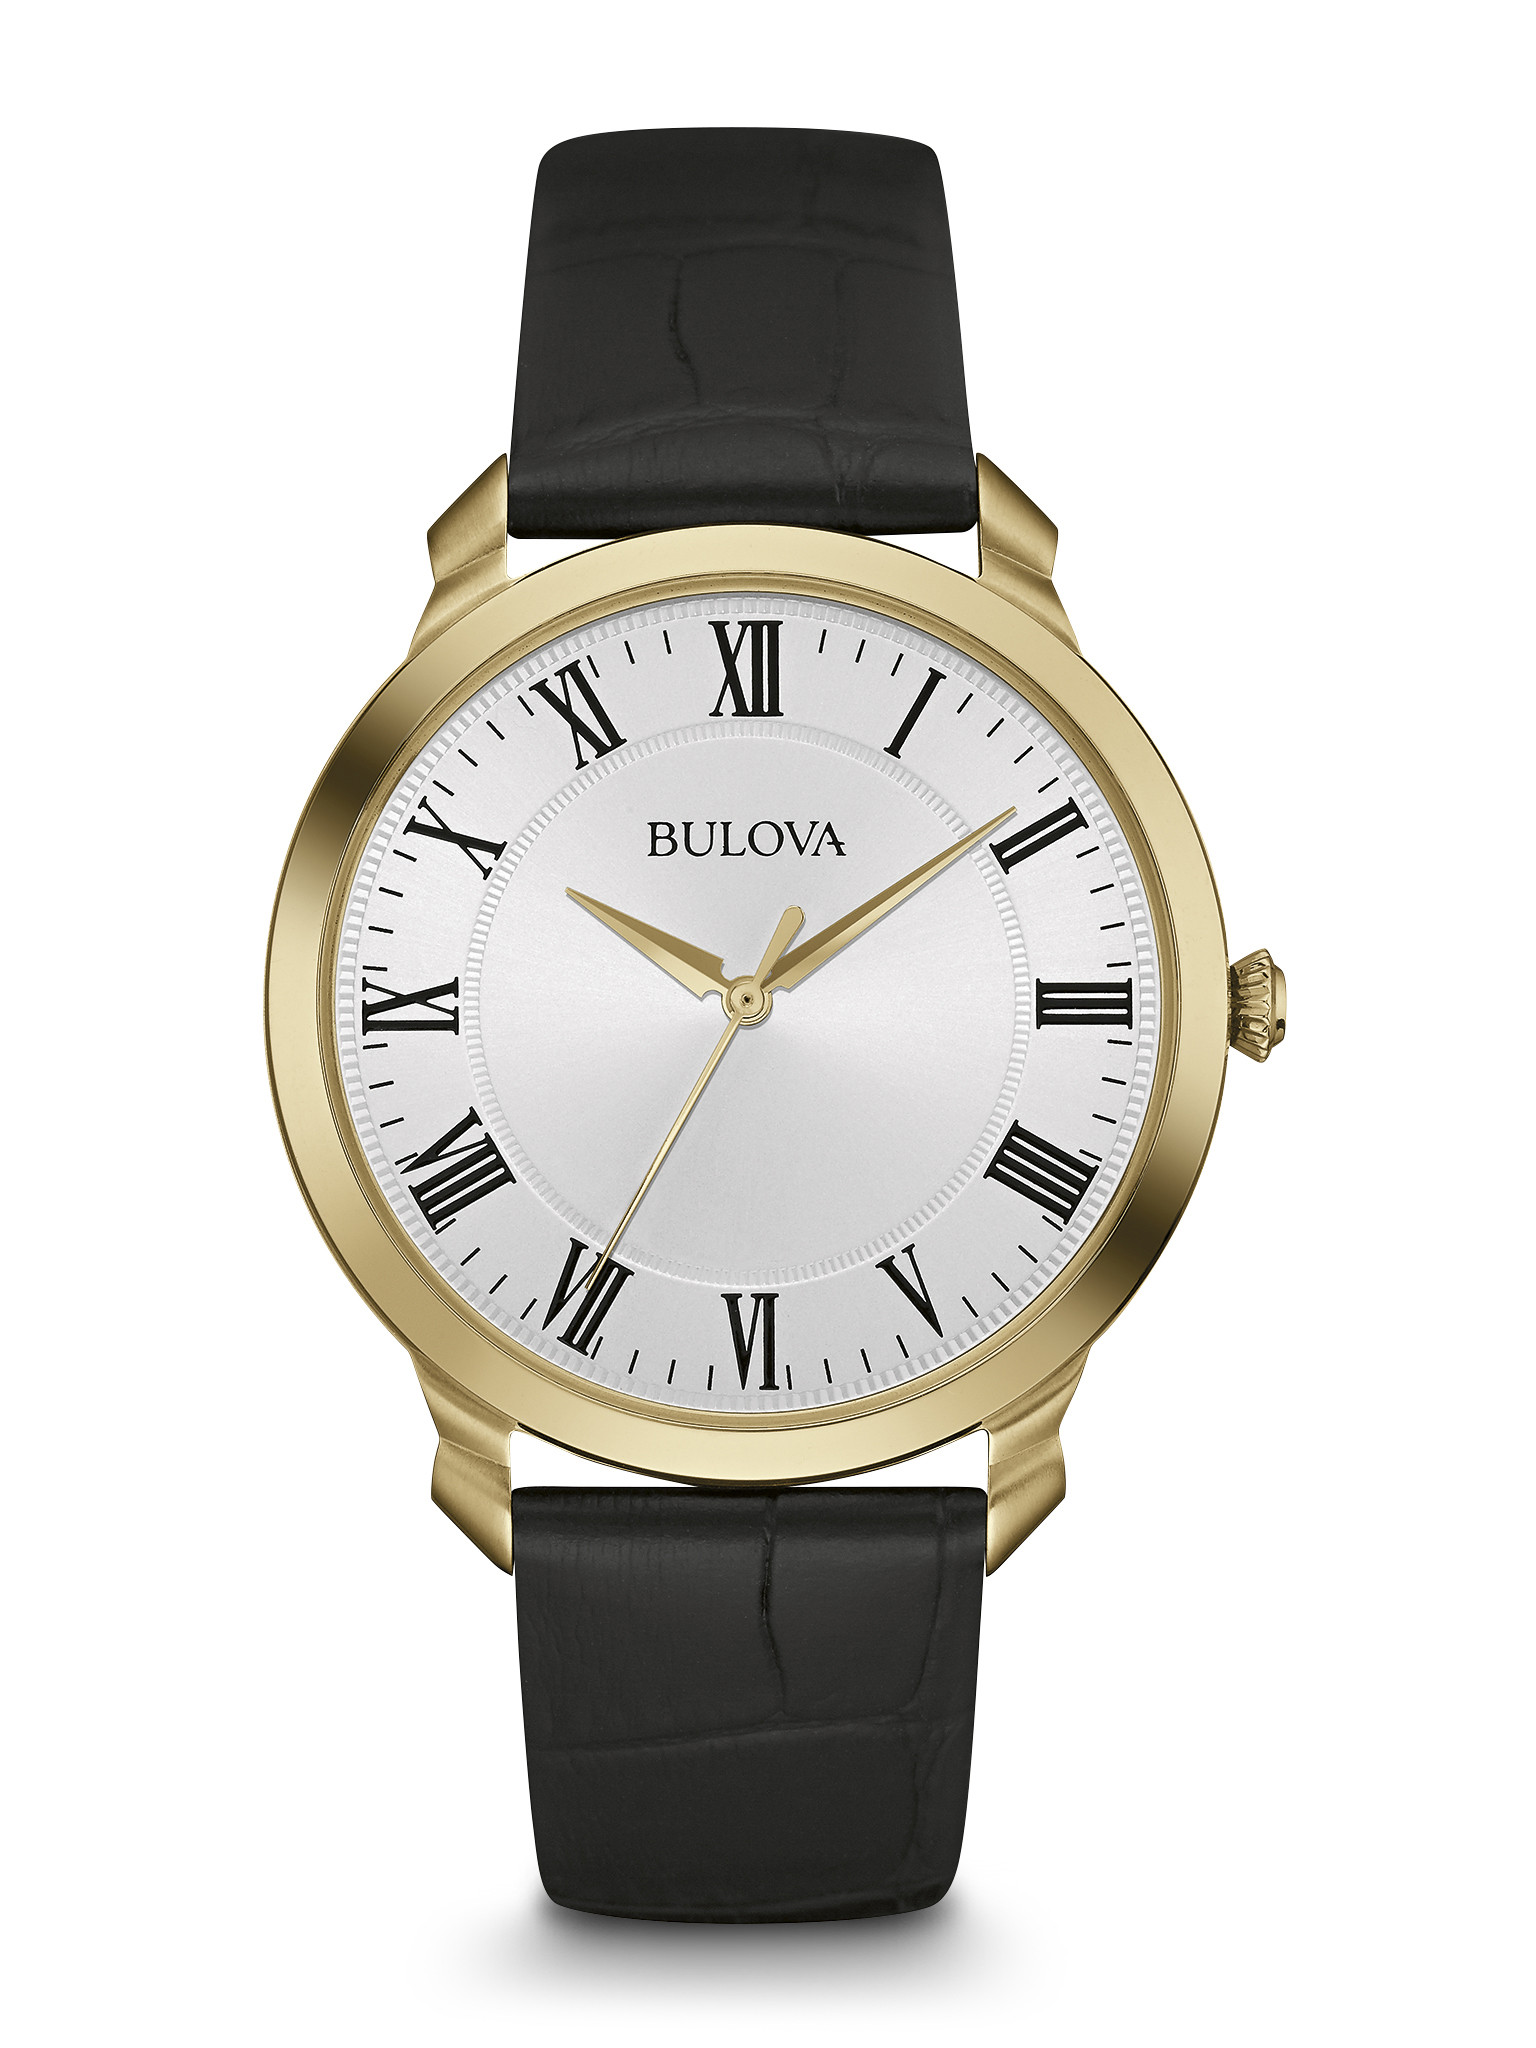 Bulova 97a123 men 39 s watch long island ny men 39 s bulova watches contempo jewelers for Watches bulova